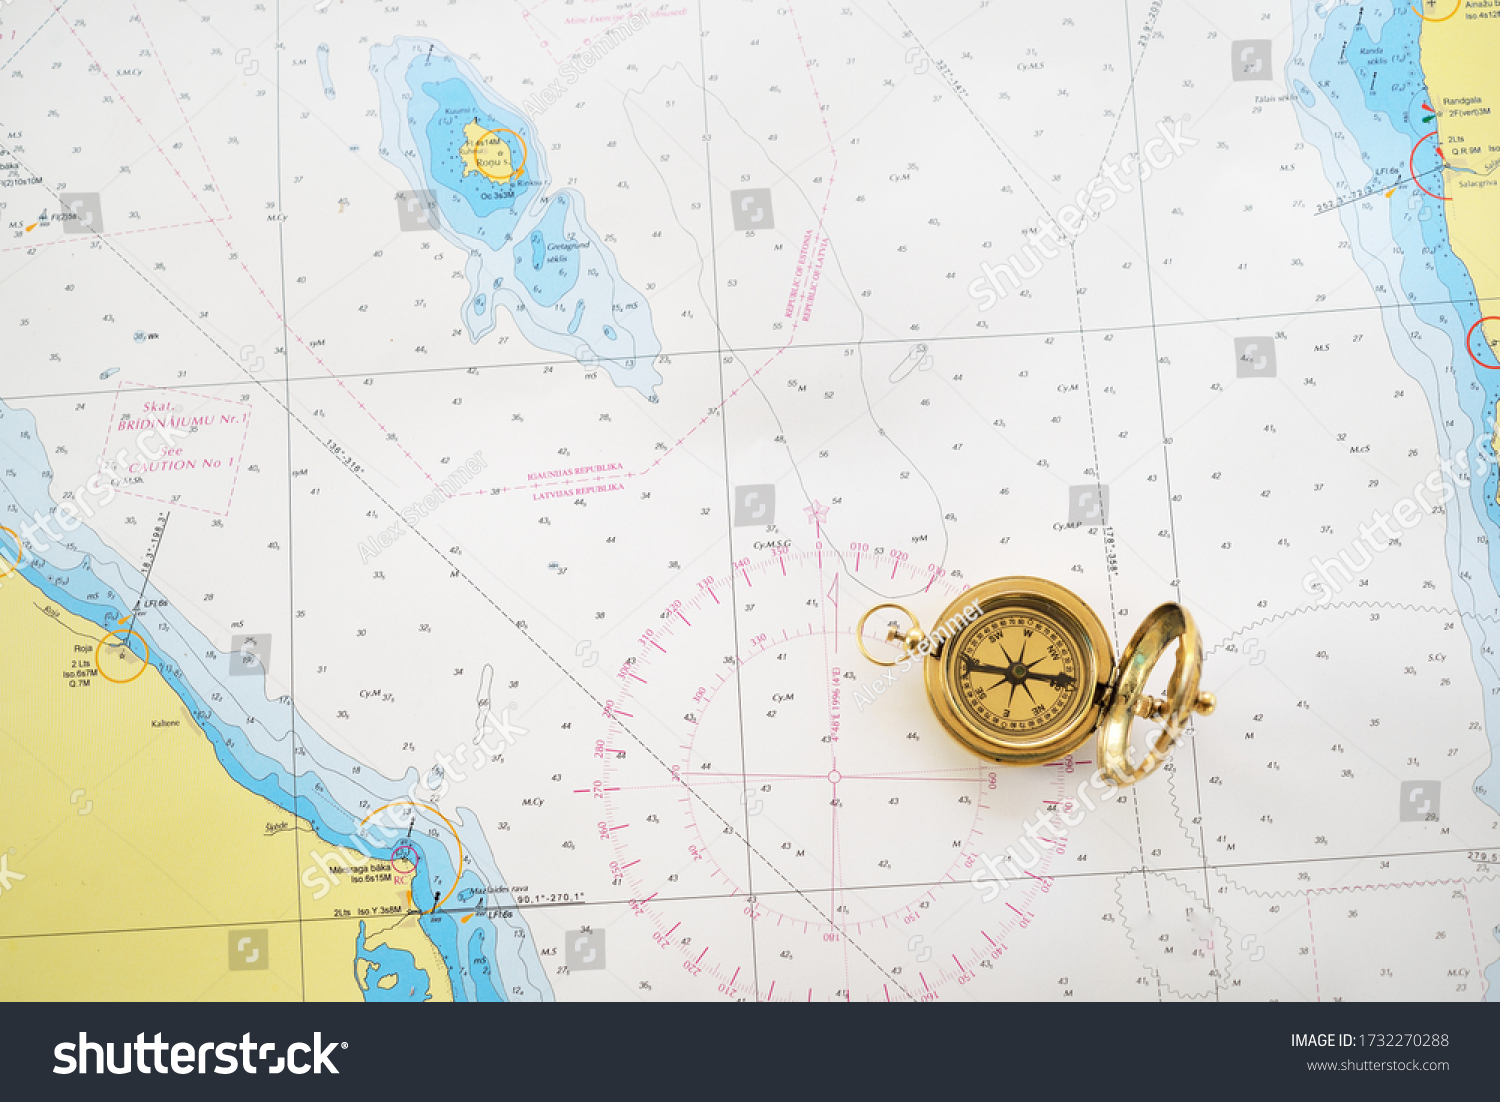 Retro styled golden compass (sundial) and old white nautical chart close-up. Vintage still life. Sailing accessories. Travel and navigation theme #1732270288